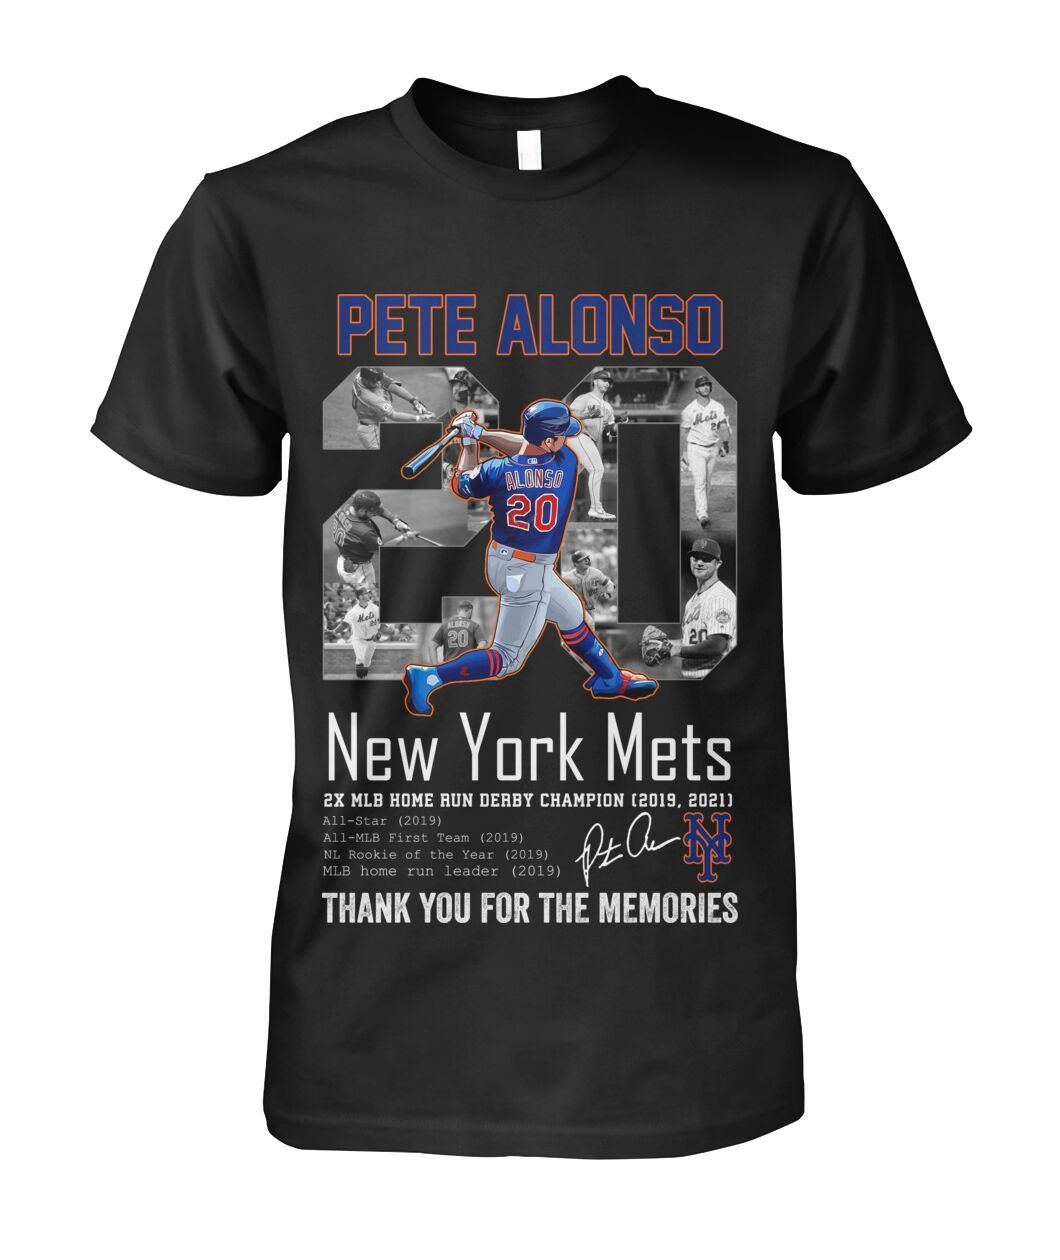 Pete alonso 20 new york mets thank you for the memories shirt